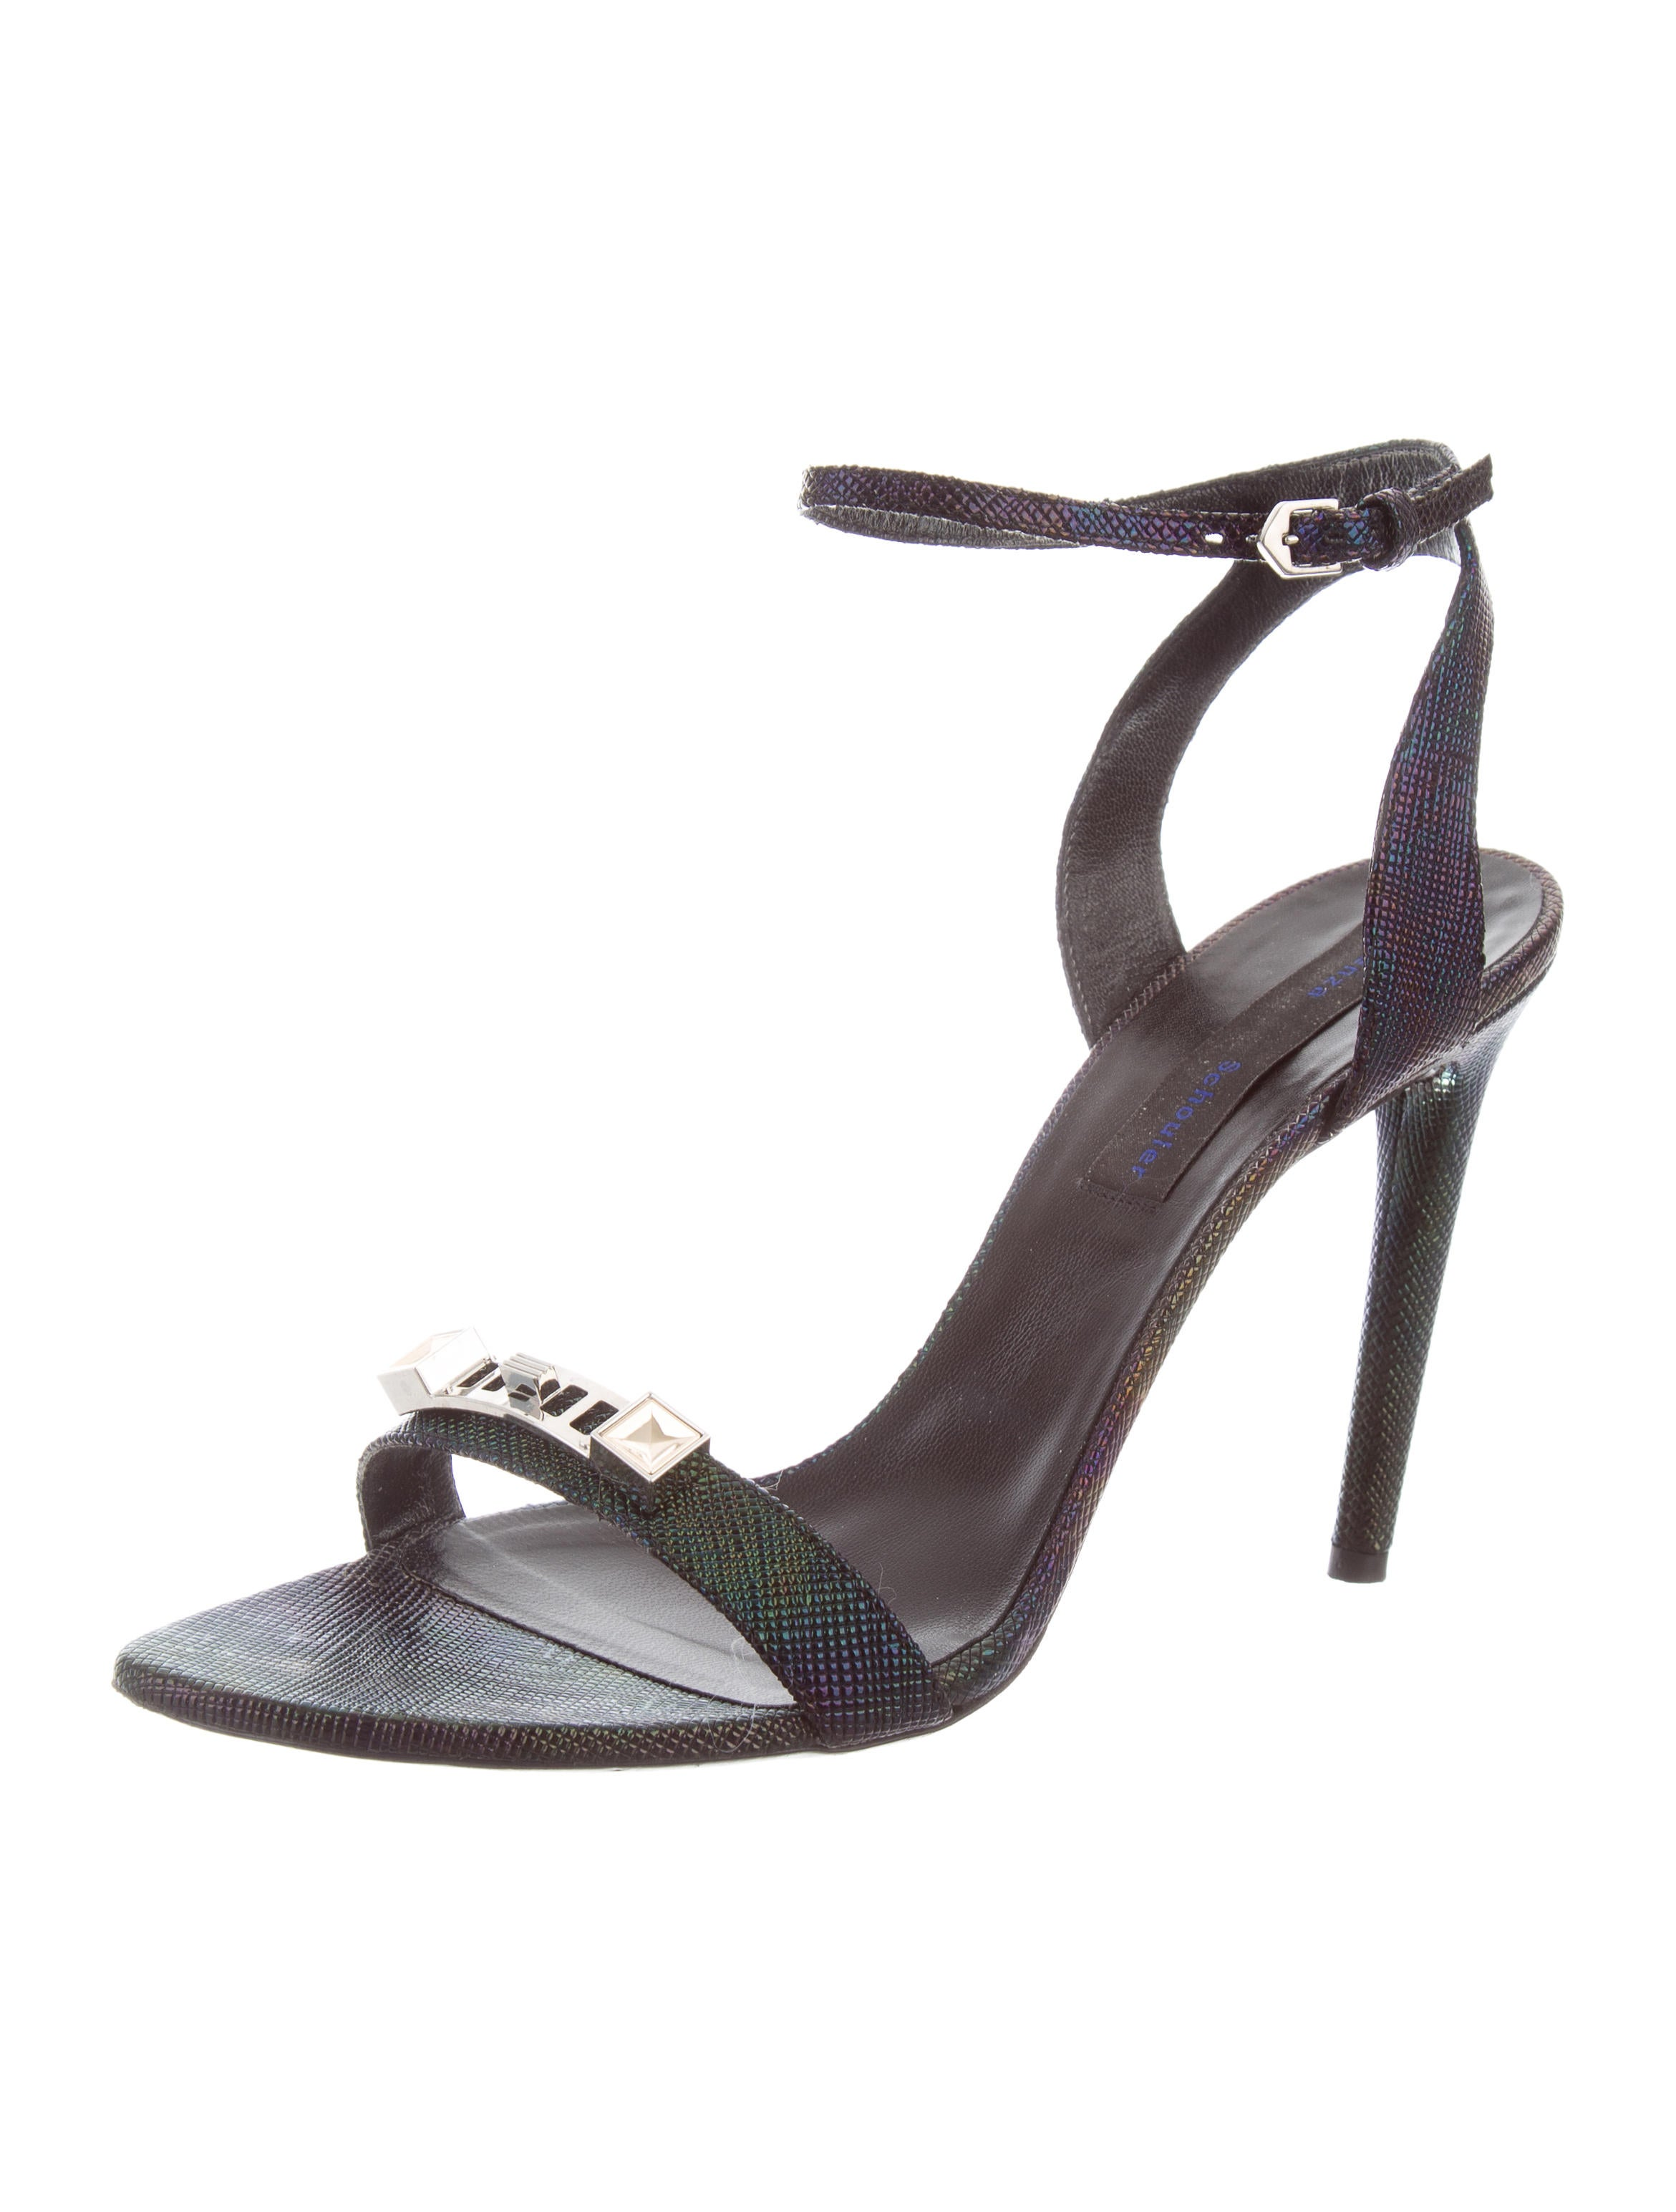 Proenza Schouler PS1 Iridescent Sandals free shipping huge surprise cheap low shipping eastbay cheap online sale prices tLomRaBct